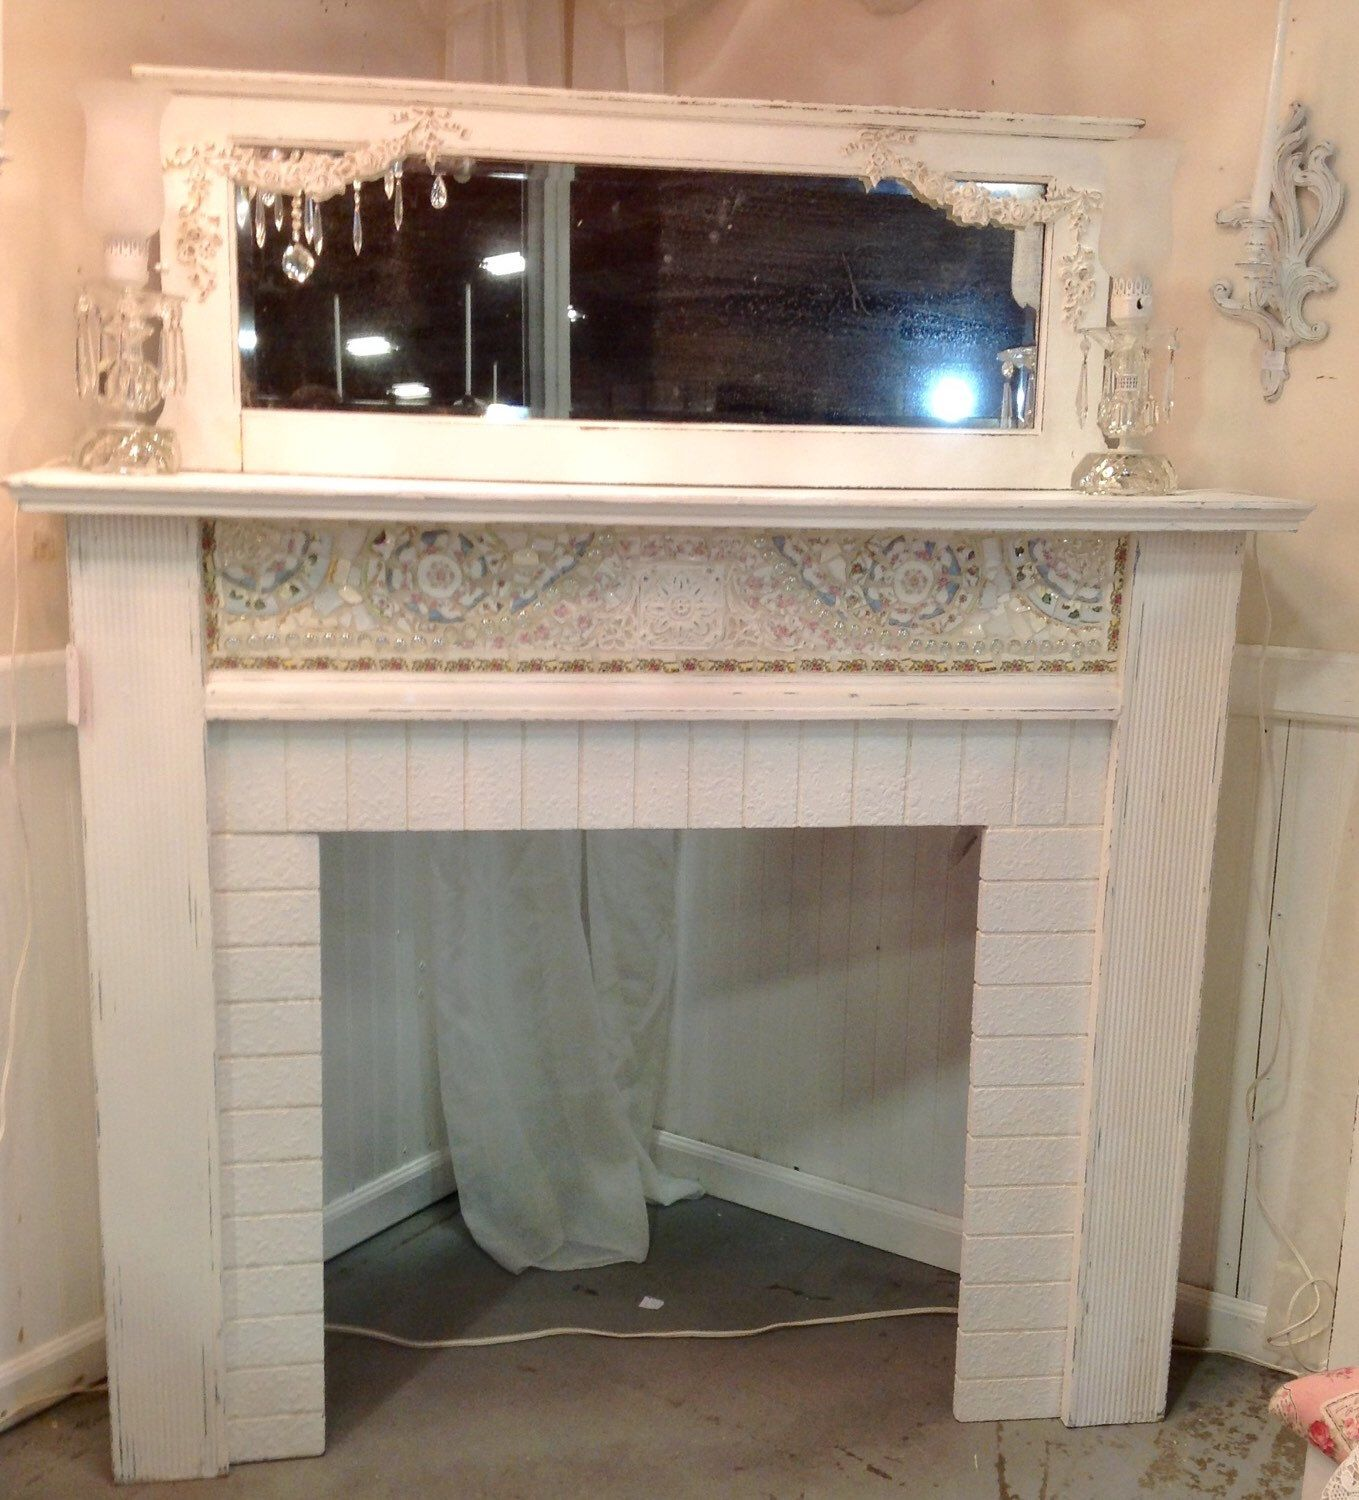 Shabby Chic Mosaic Fireplace Mantle With Mirror Painted Cottage White by PinkPaperRose on Etsy https://www.etsy.com/listing/214250832/shabby-chic-mosaic-fireplace-mantle-with